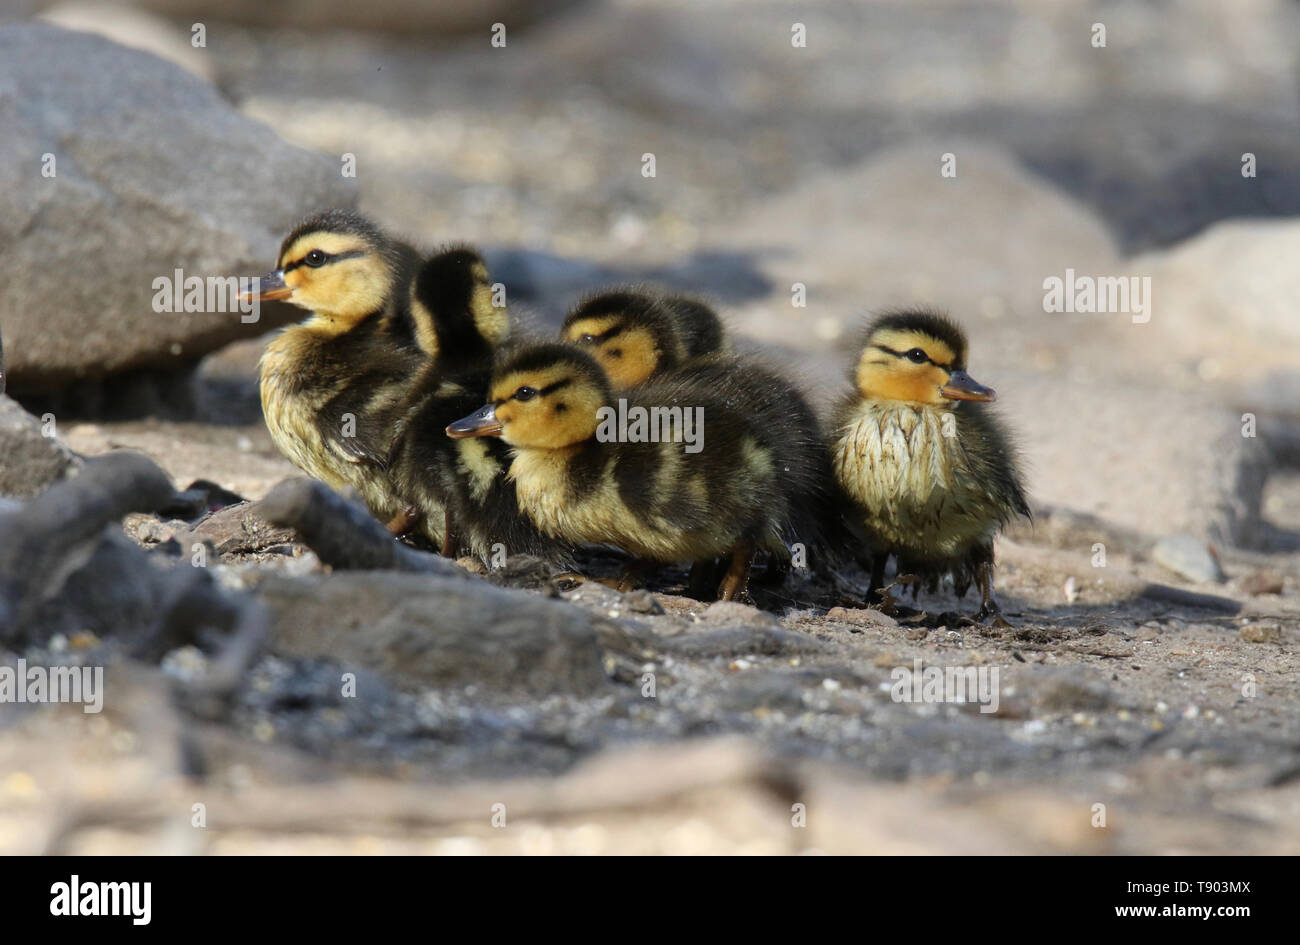 A group of newly hatched mallard ducklings huddle together - Stock Image